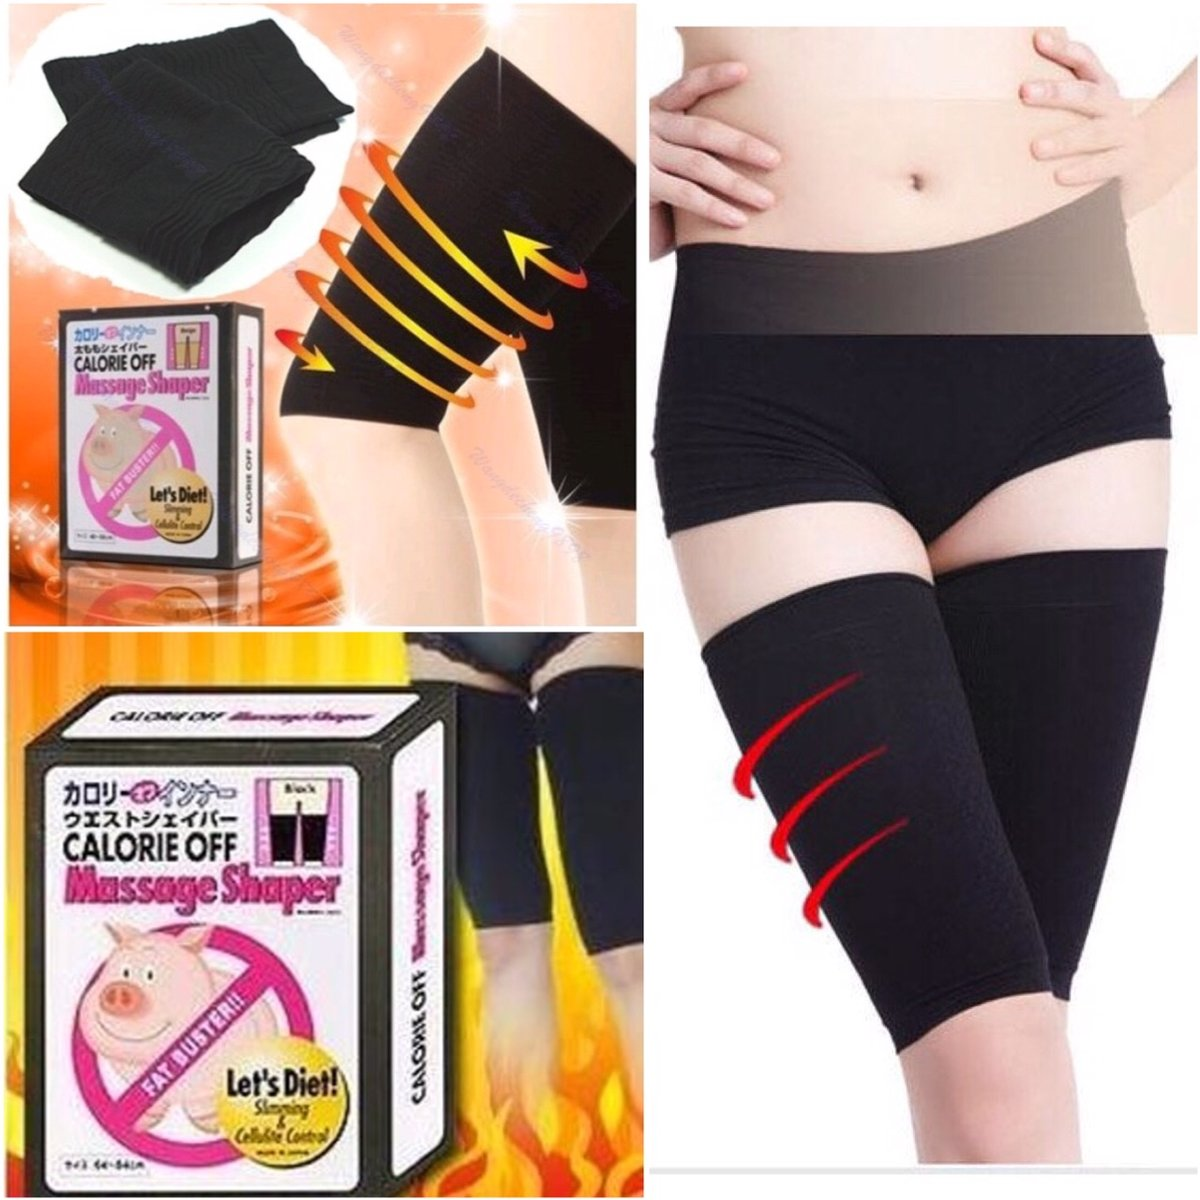 (Black/Thigh) Japan Calorie Off Massage Shaper - Thigh x 1 Pair